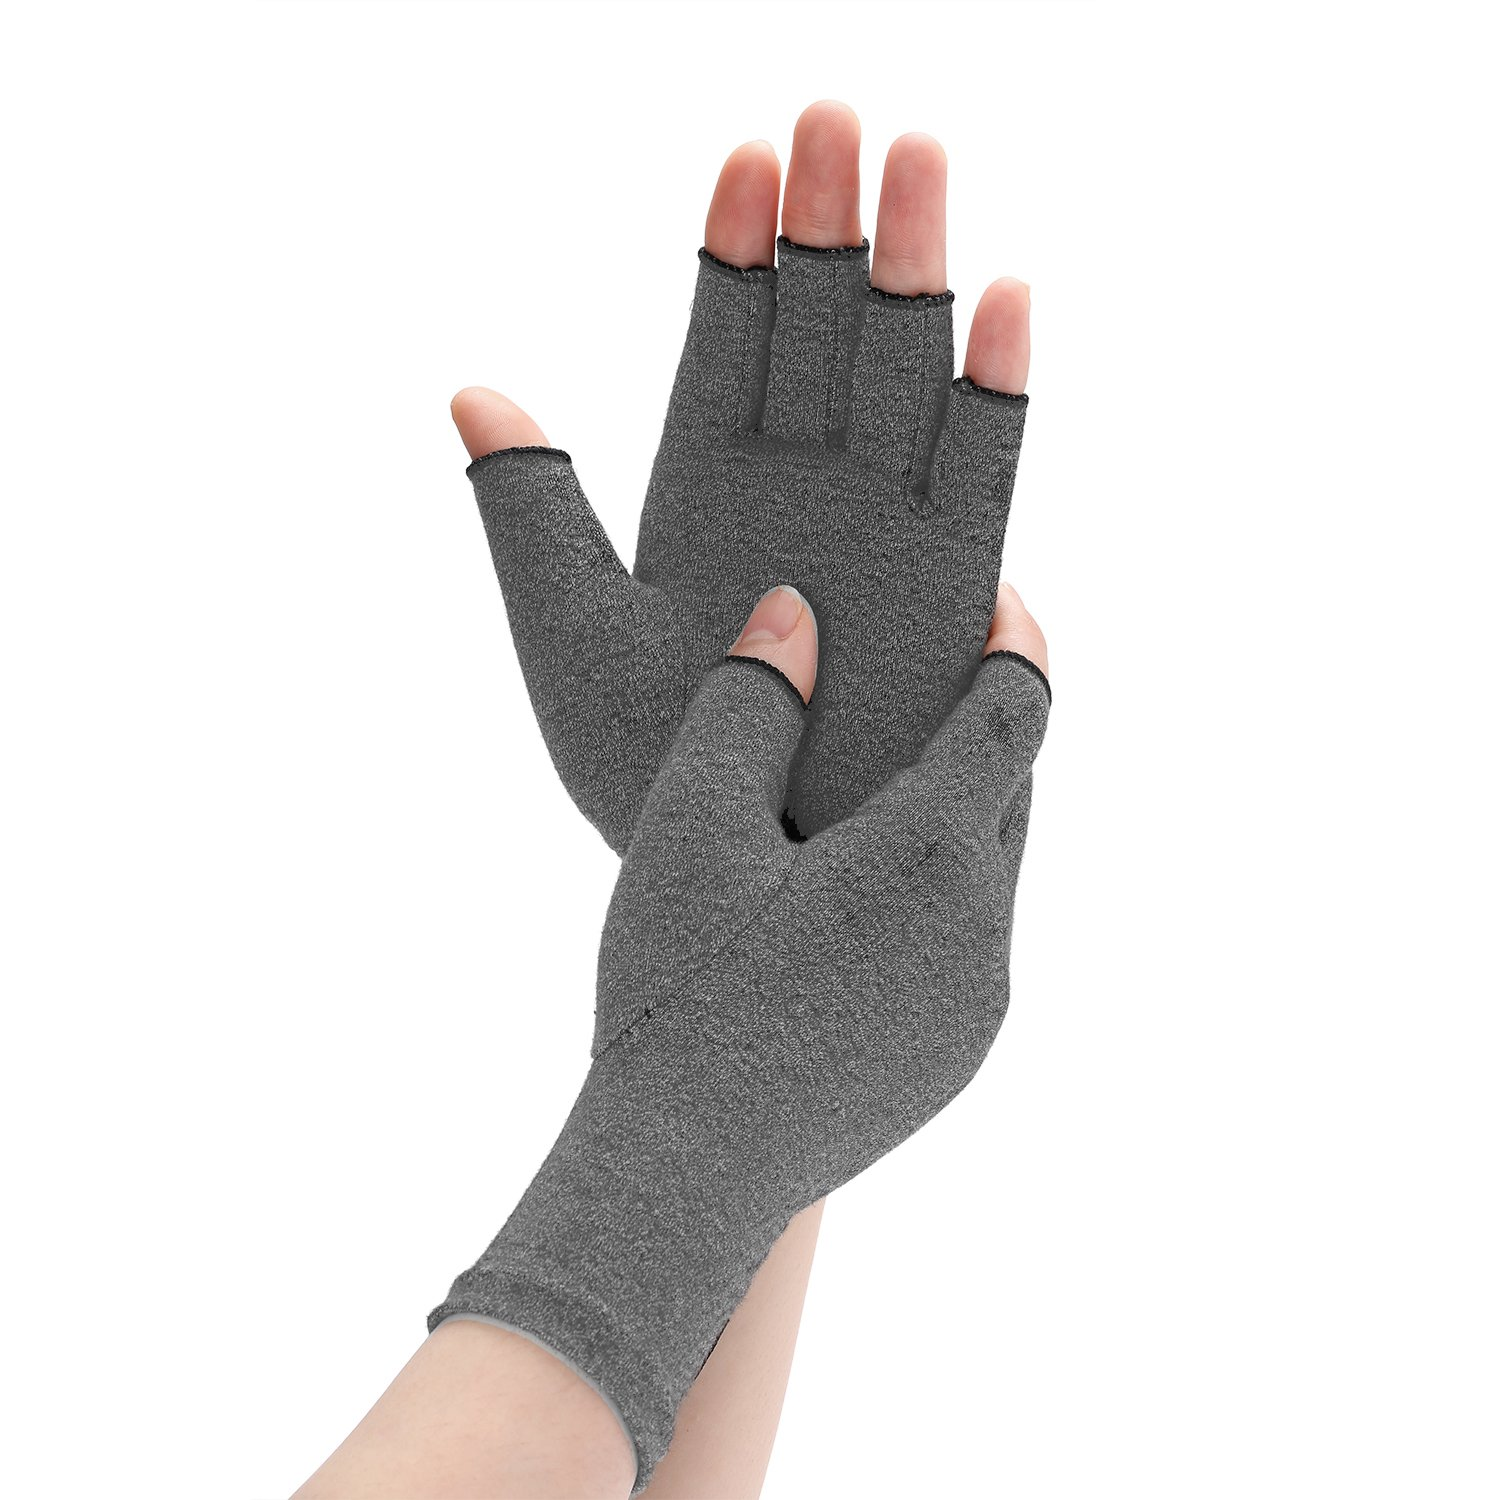 Arthritis Compression Gloves Relieve Pain from Rheumatoid, RSI, Carpal Tunnel, Rheumatiod, Tendonitis, Hand Gloves Fingerless for Dailywork - Men & Women - Open Finger (Gray, Medium)